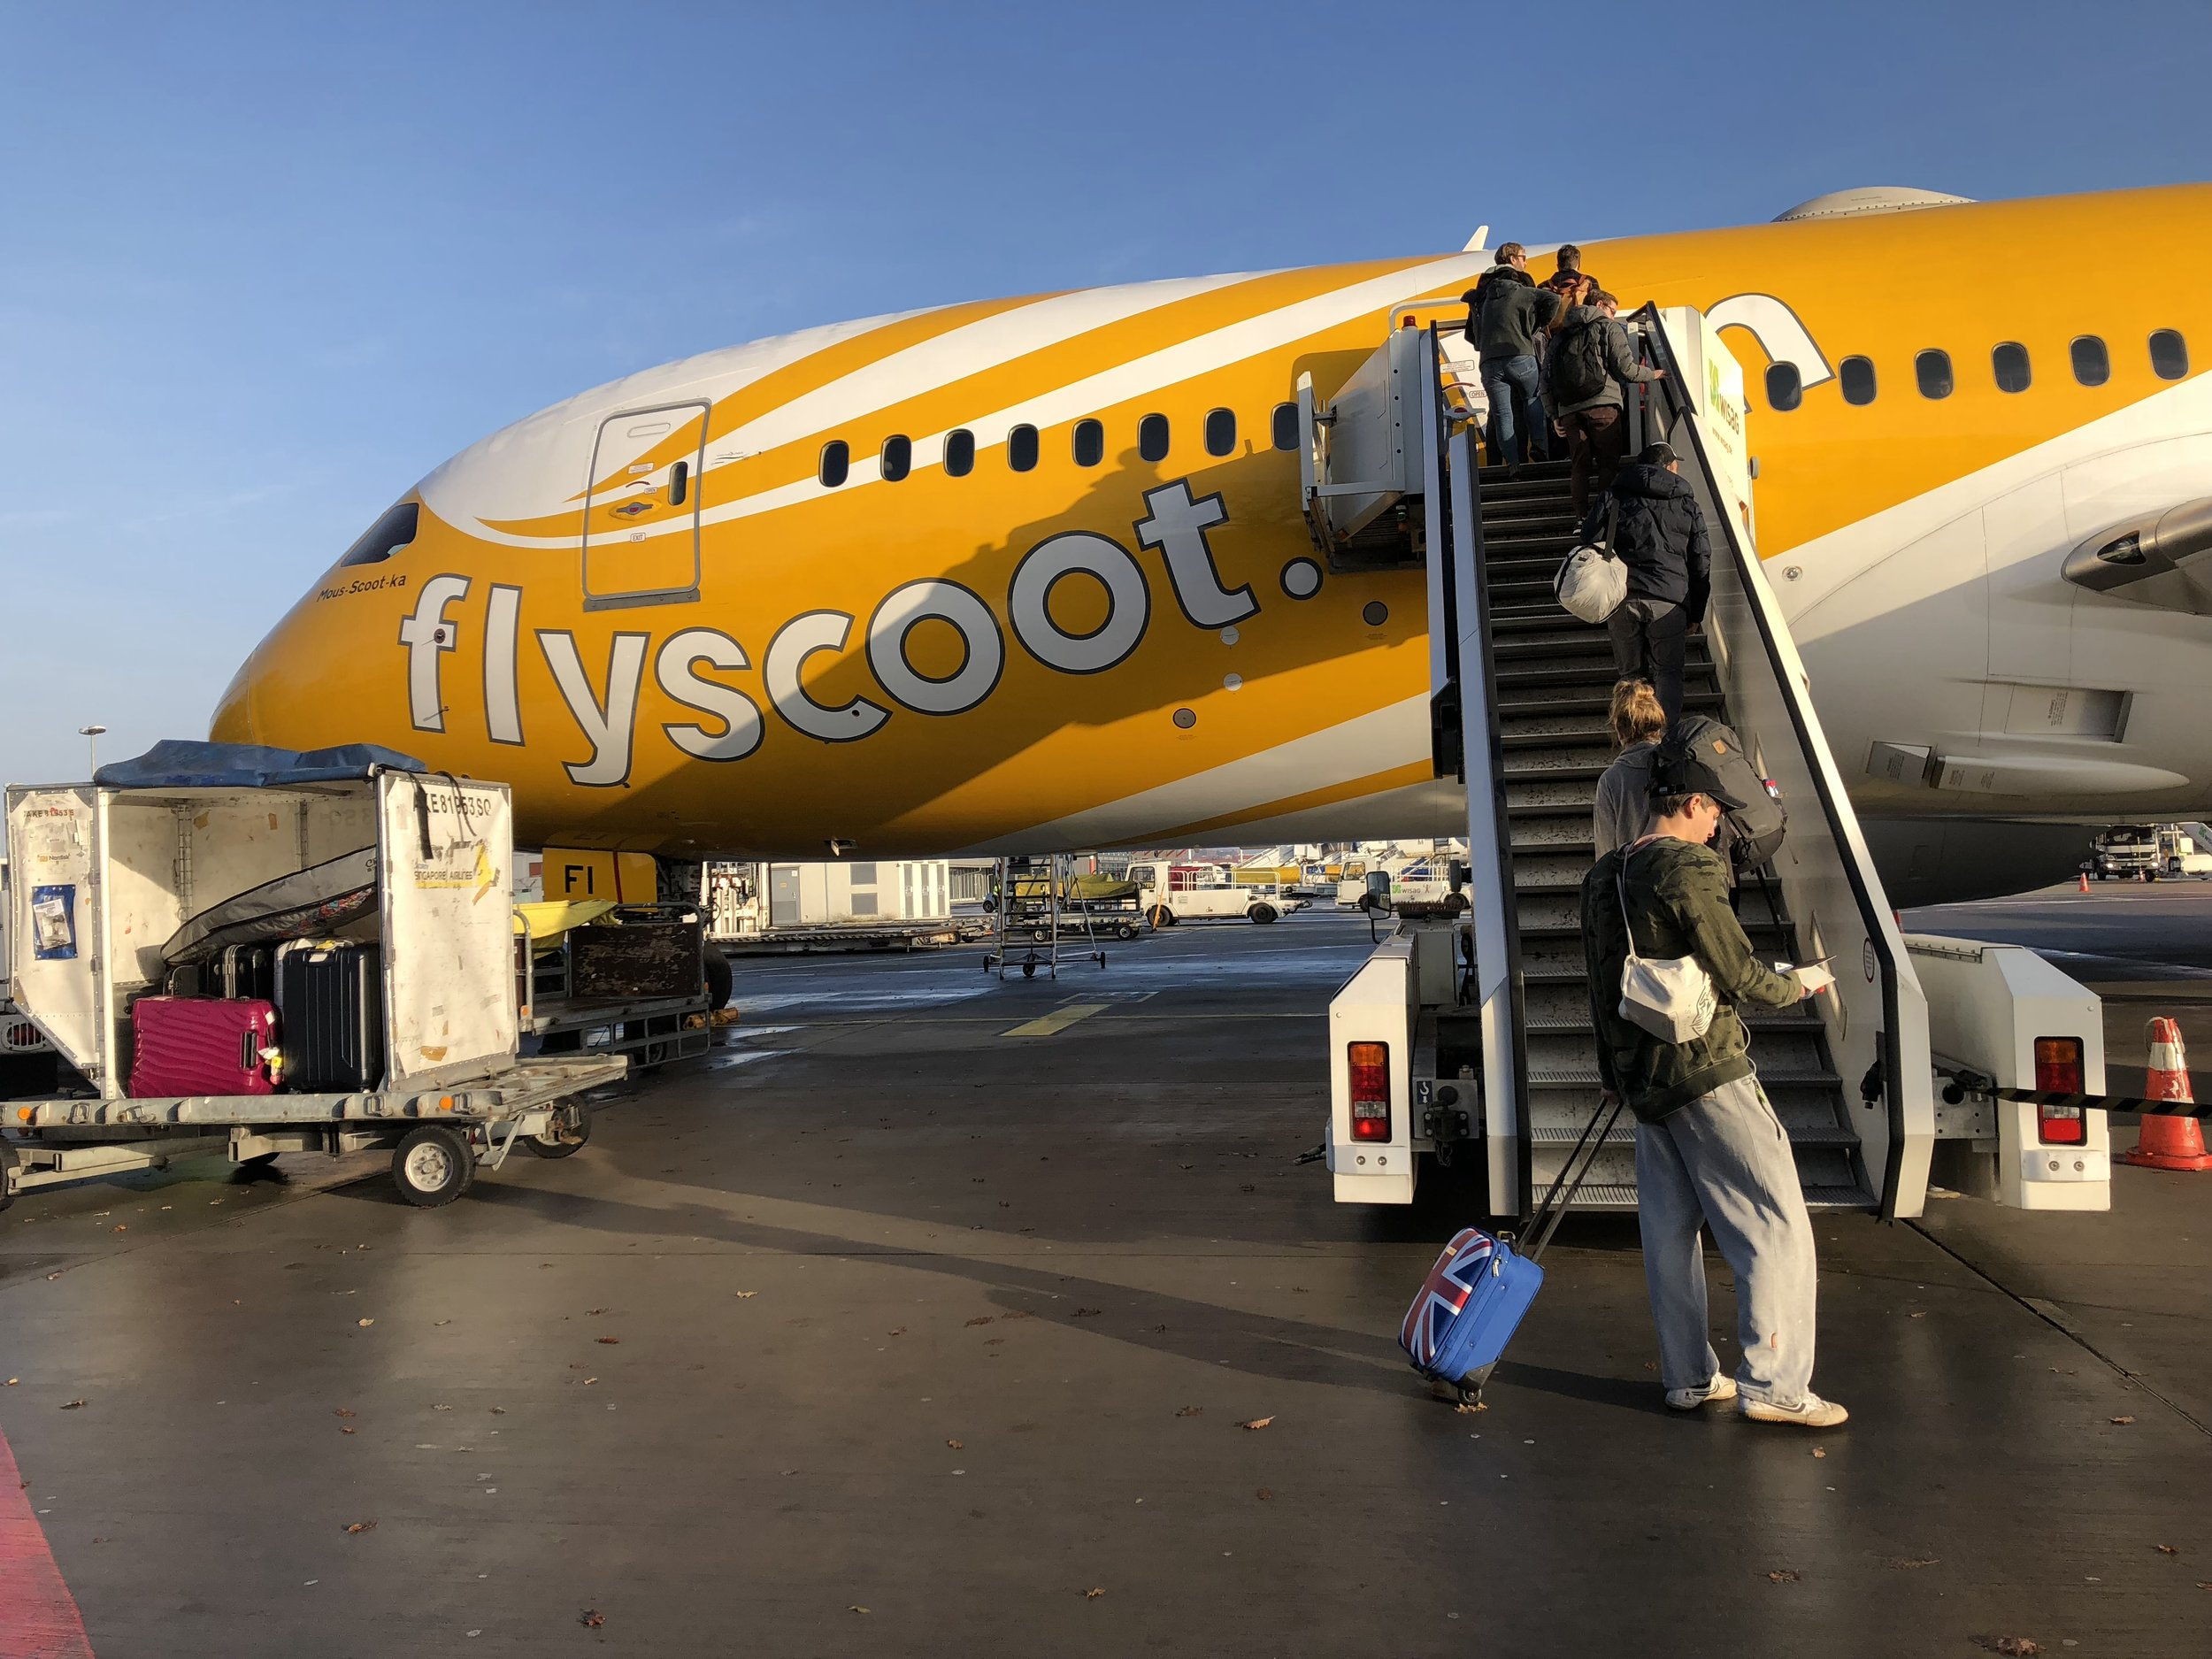 Scoot has direct flights from Tegel to Singapore, mine was 260€, but it doesn't include water. For real.